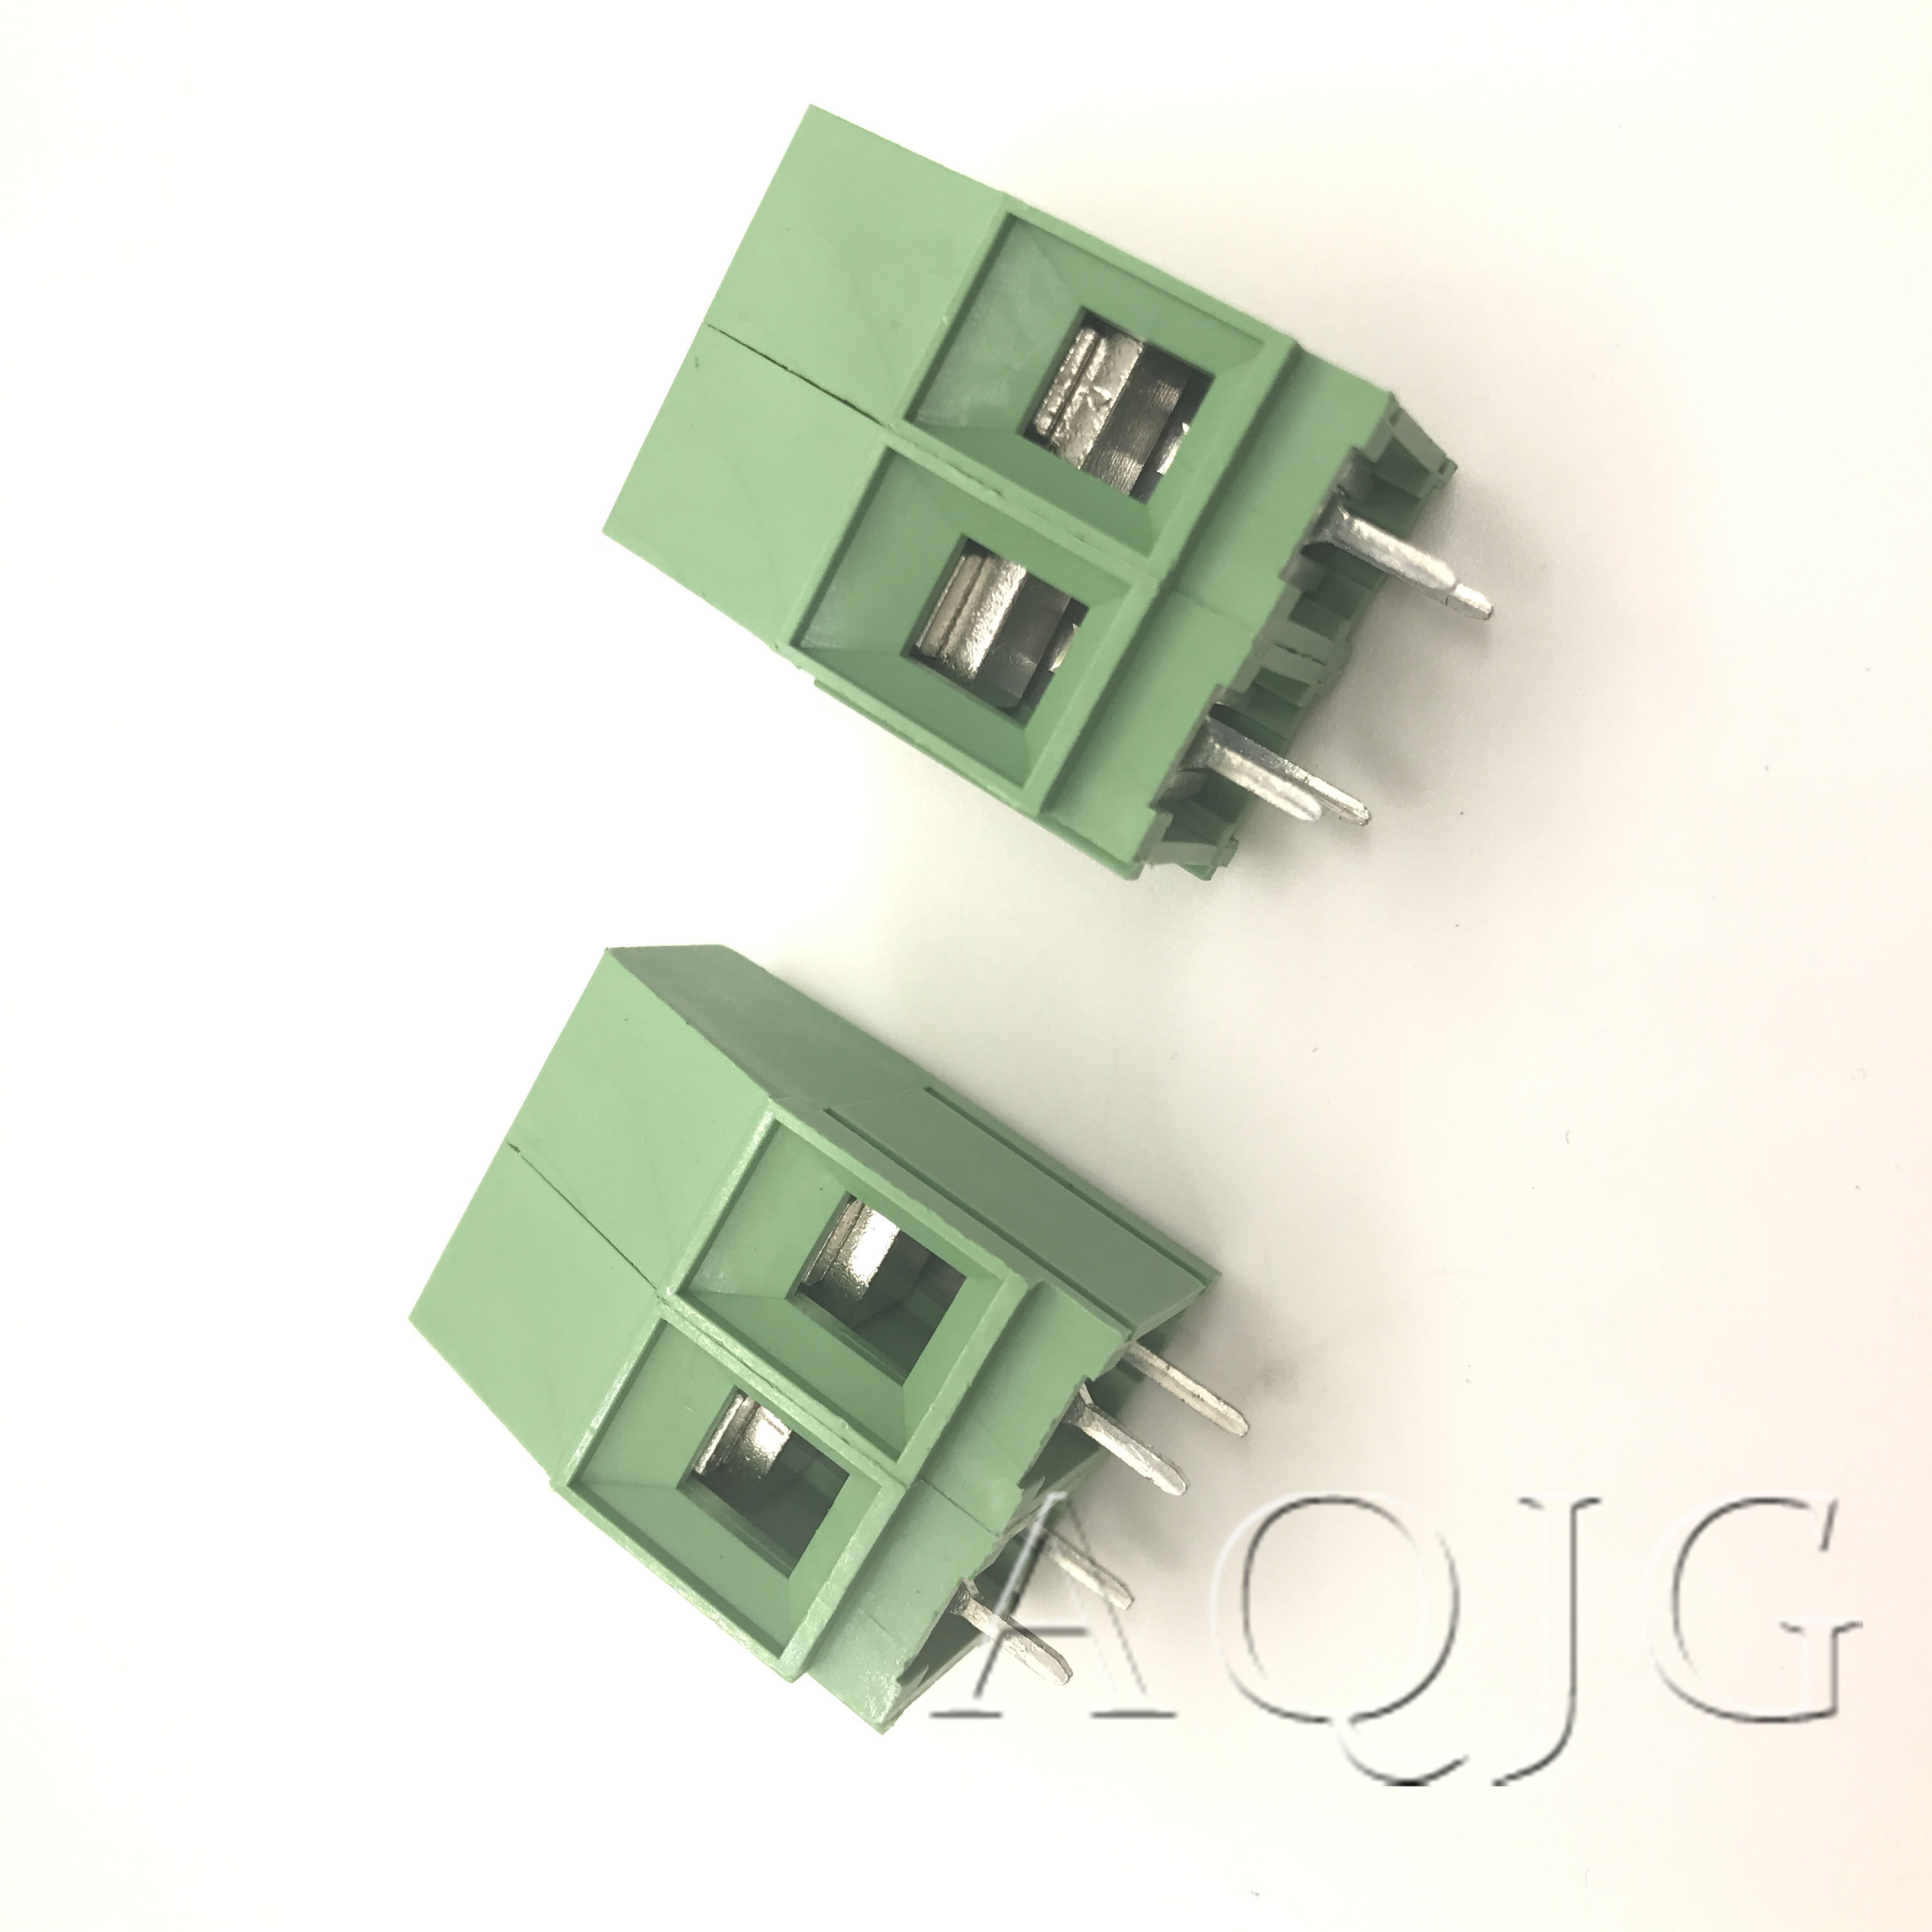 100Pcs Lot KF129 3Pin 5 08mm pitch Terminal Connectors PCB terminal 2 pin 3P 300V 25A in Terminals from Home Improvement